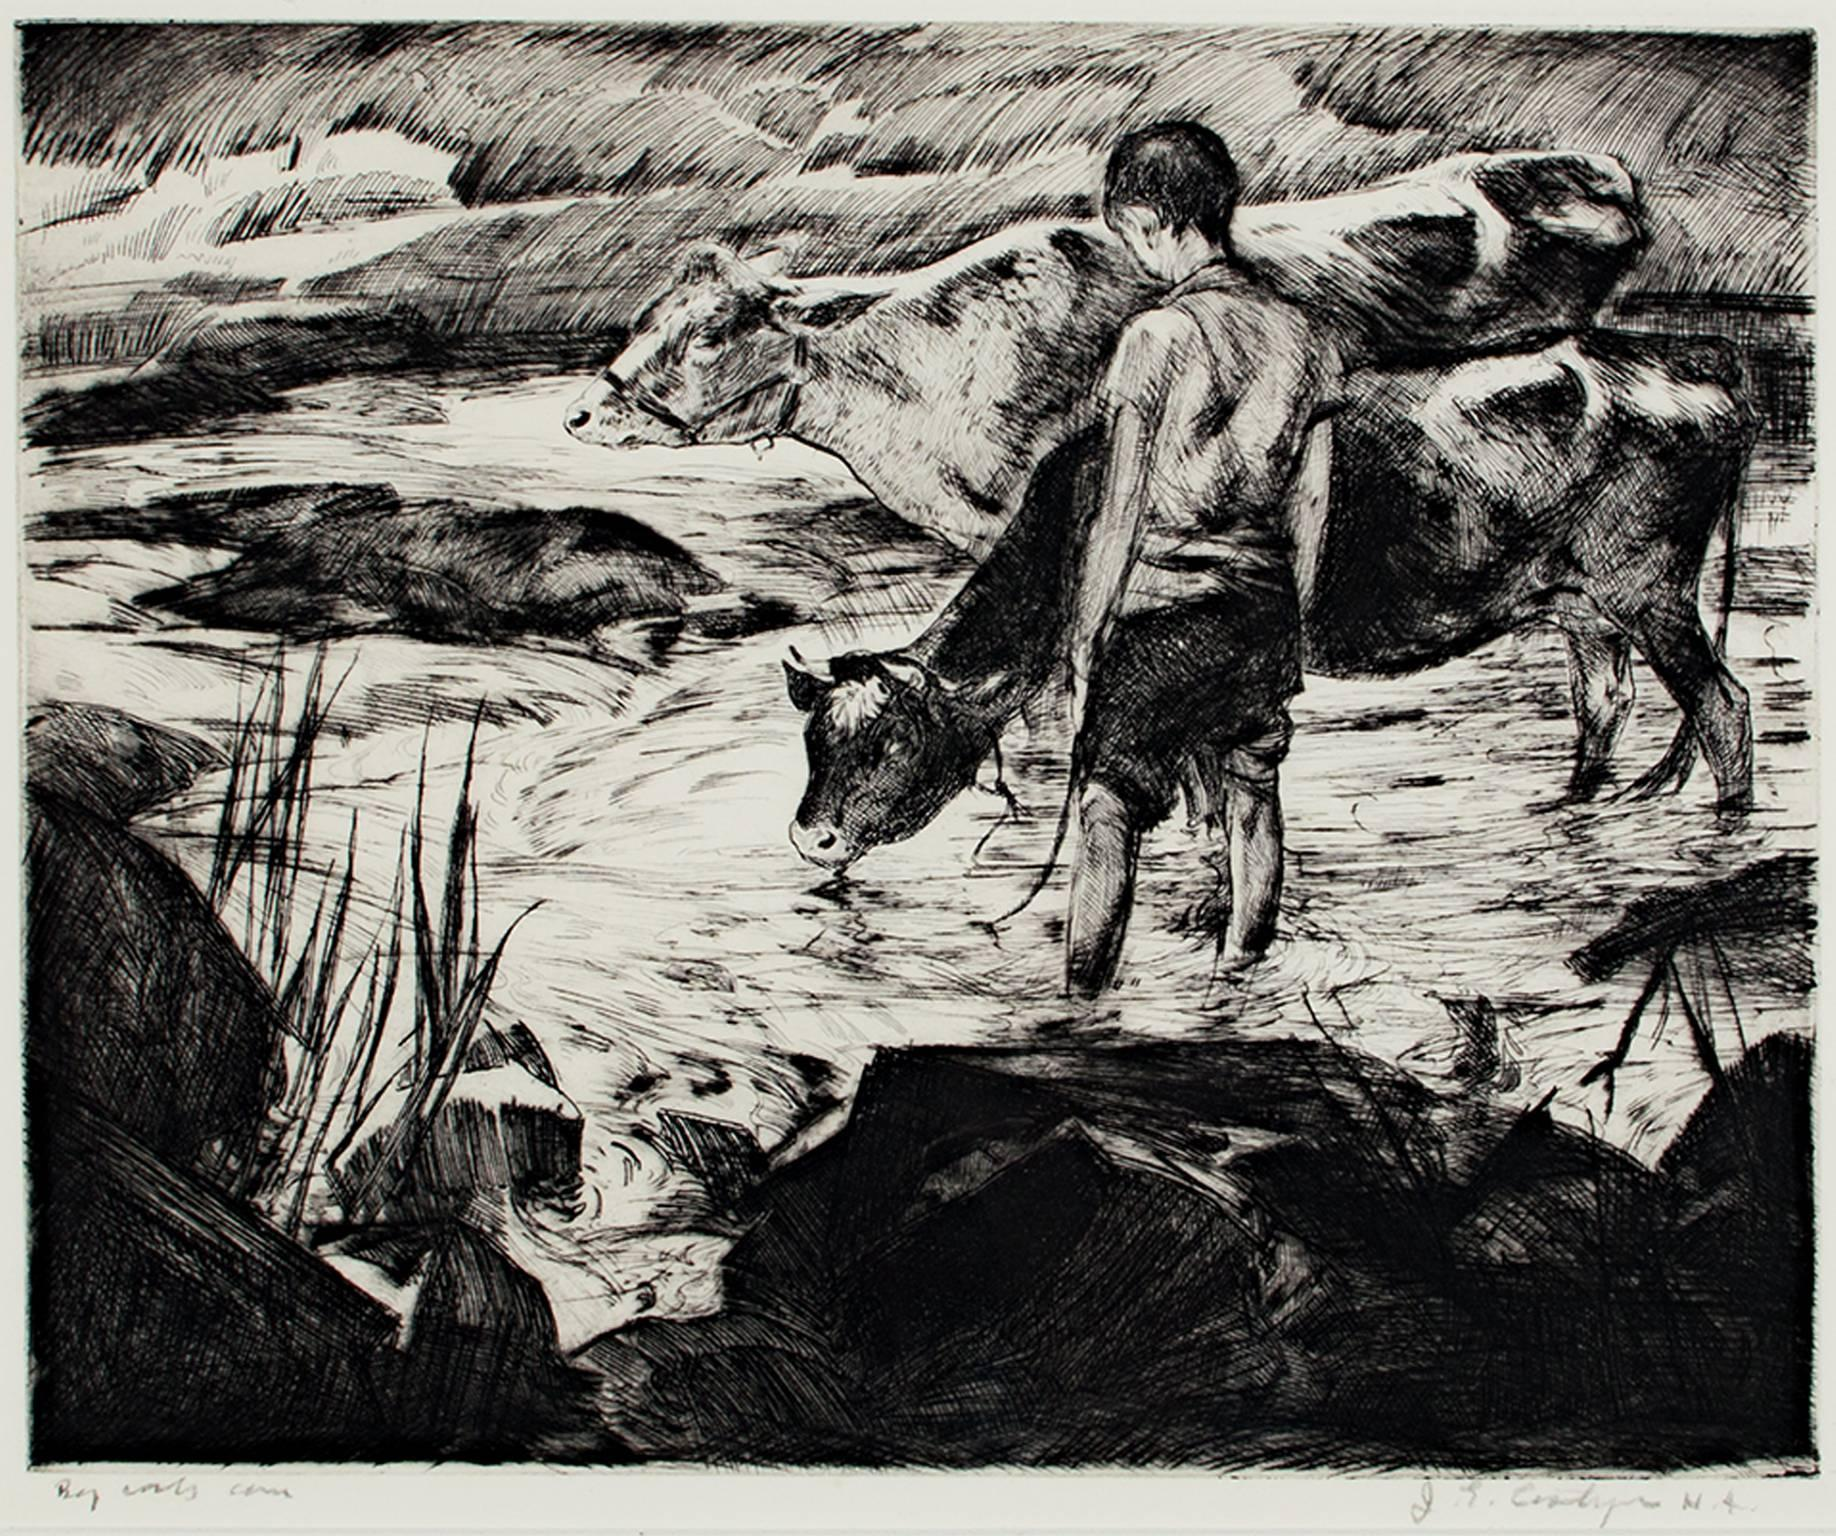 """""""Boy With Cows,"""" Original Drypoint Etching signed by John Edward Costigan"""